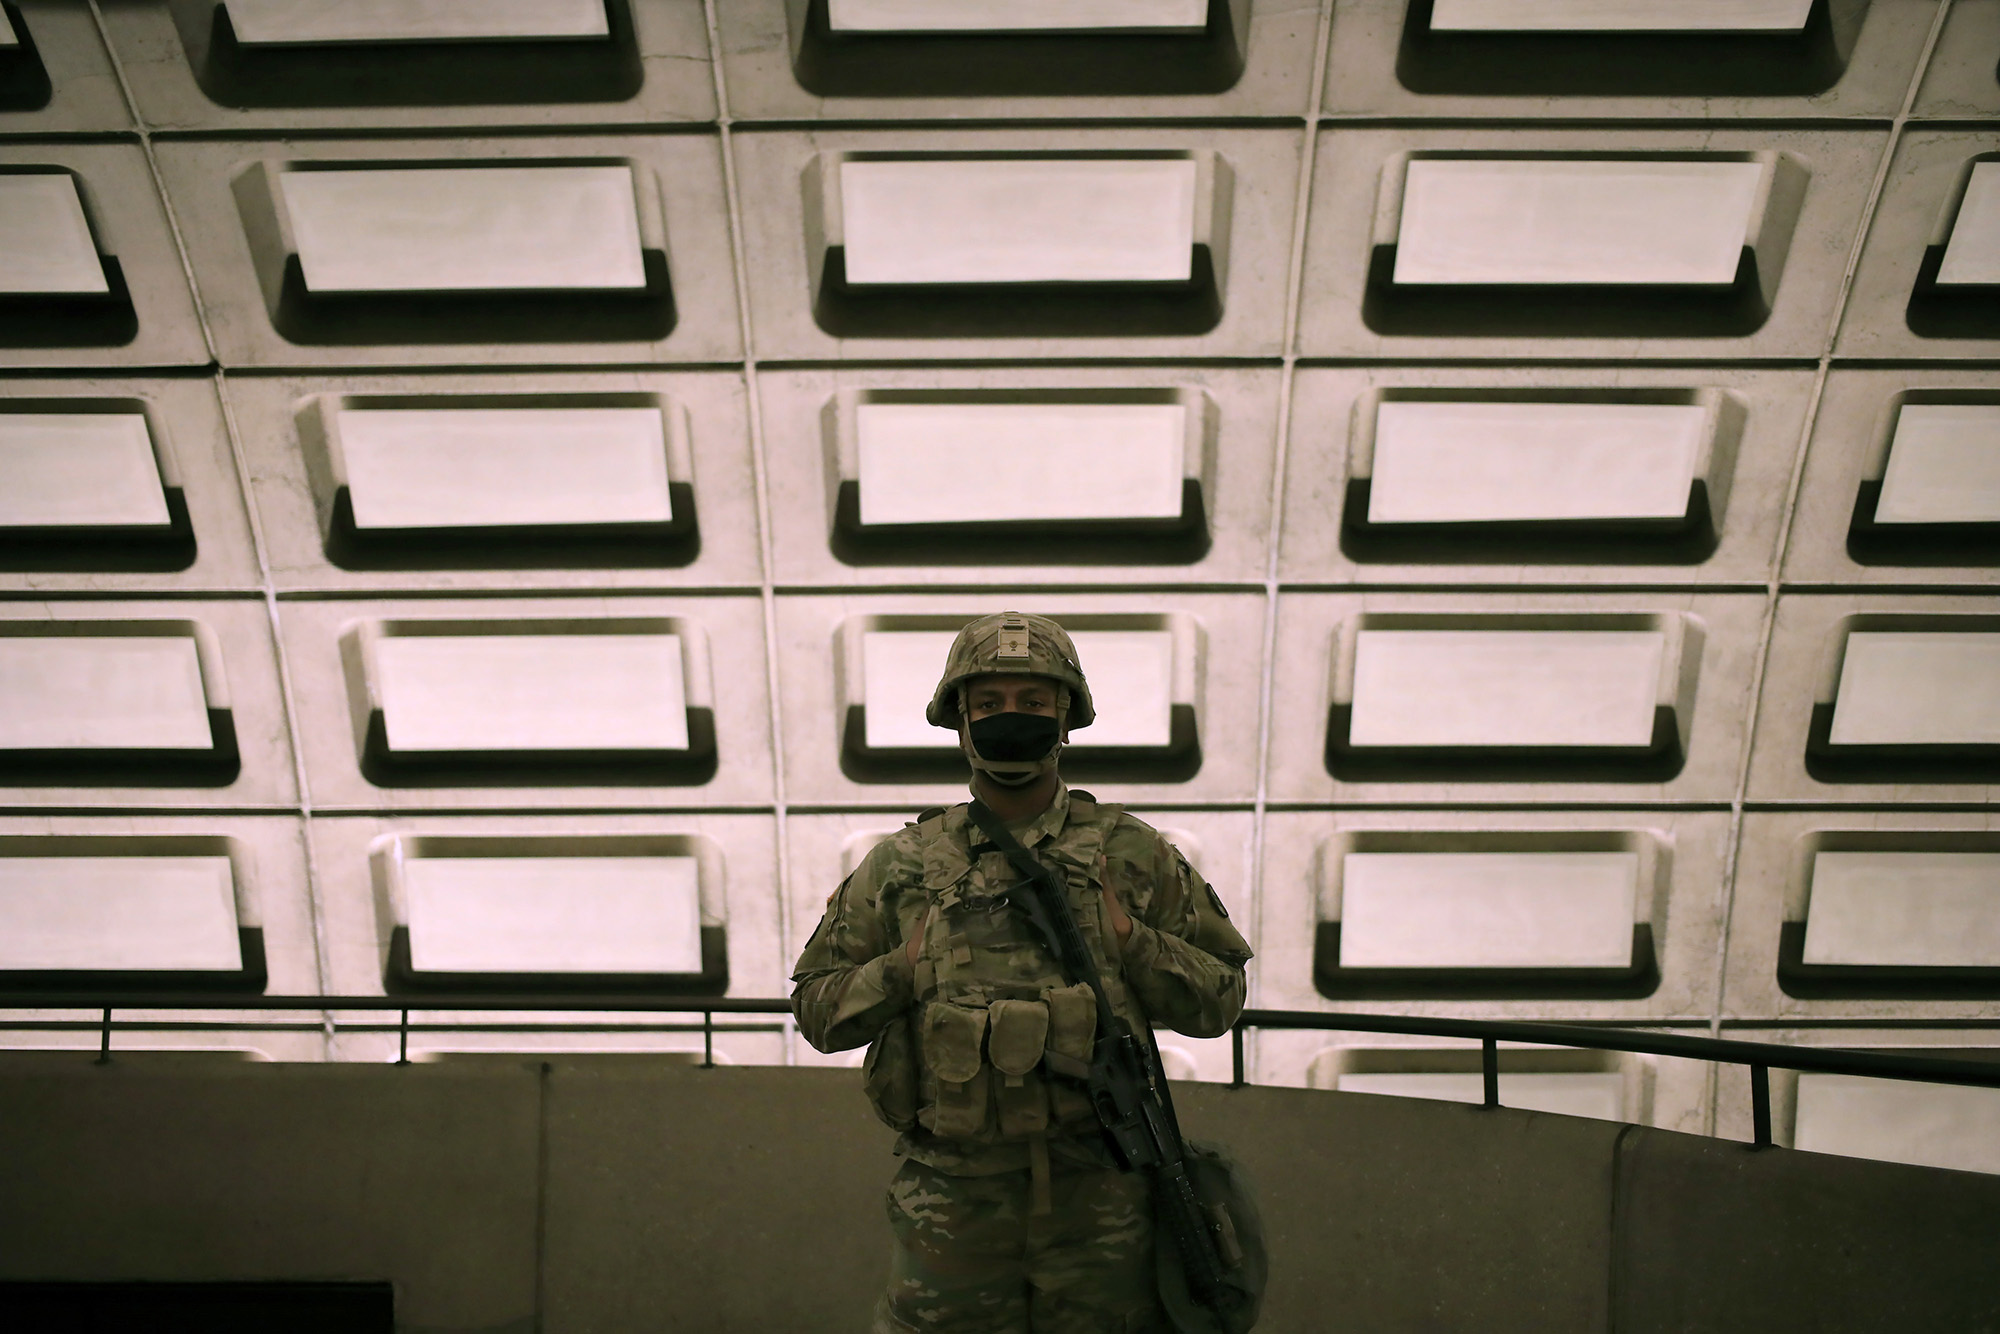 Soldiers from the North Carolina Army National Guard patrol the Rosslyn Metro station on the morning of the inauguration on Jan. 20, 2021, in Arlington, Va. (Luke Sharrett/Getty Images)